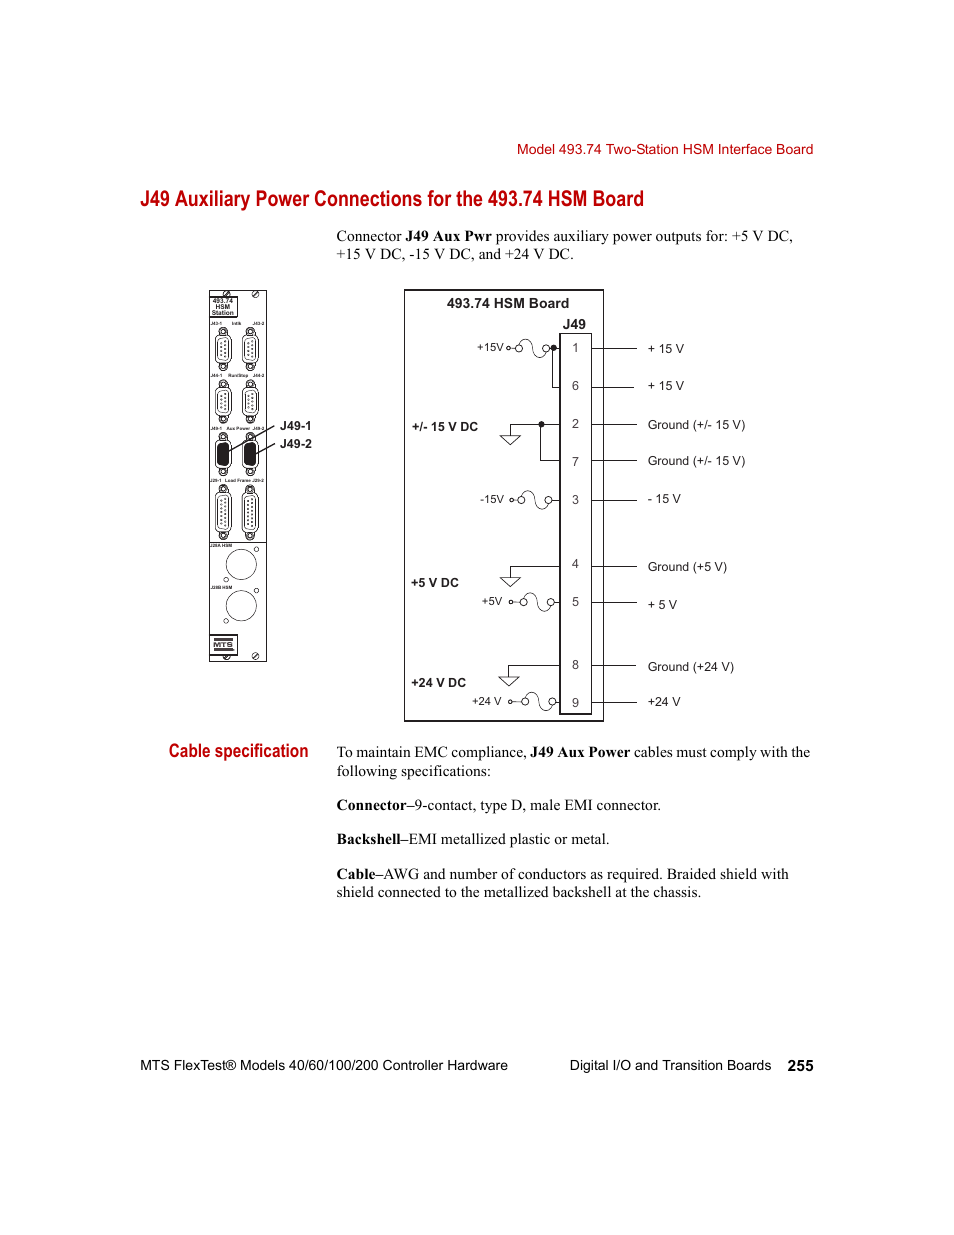 cable specification mts flextest models 200 user manual page 255cable specification mts flextest models 200 user manual page 255 344